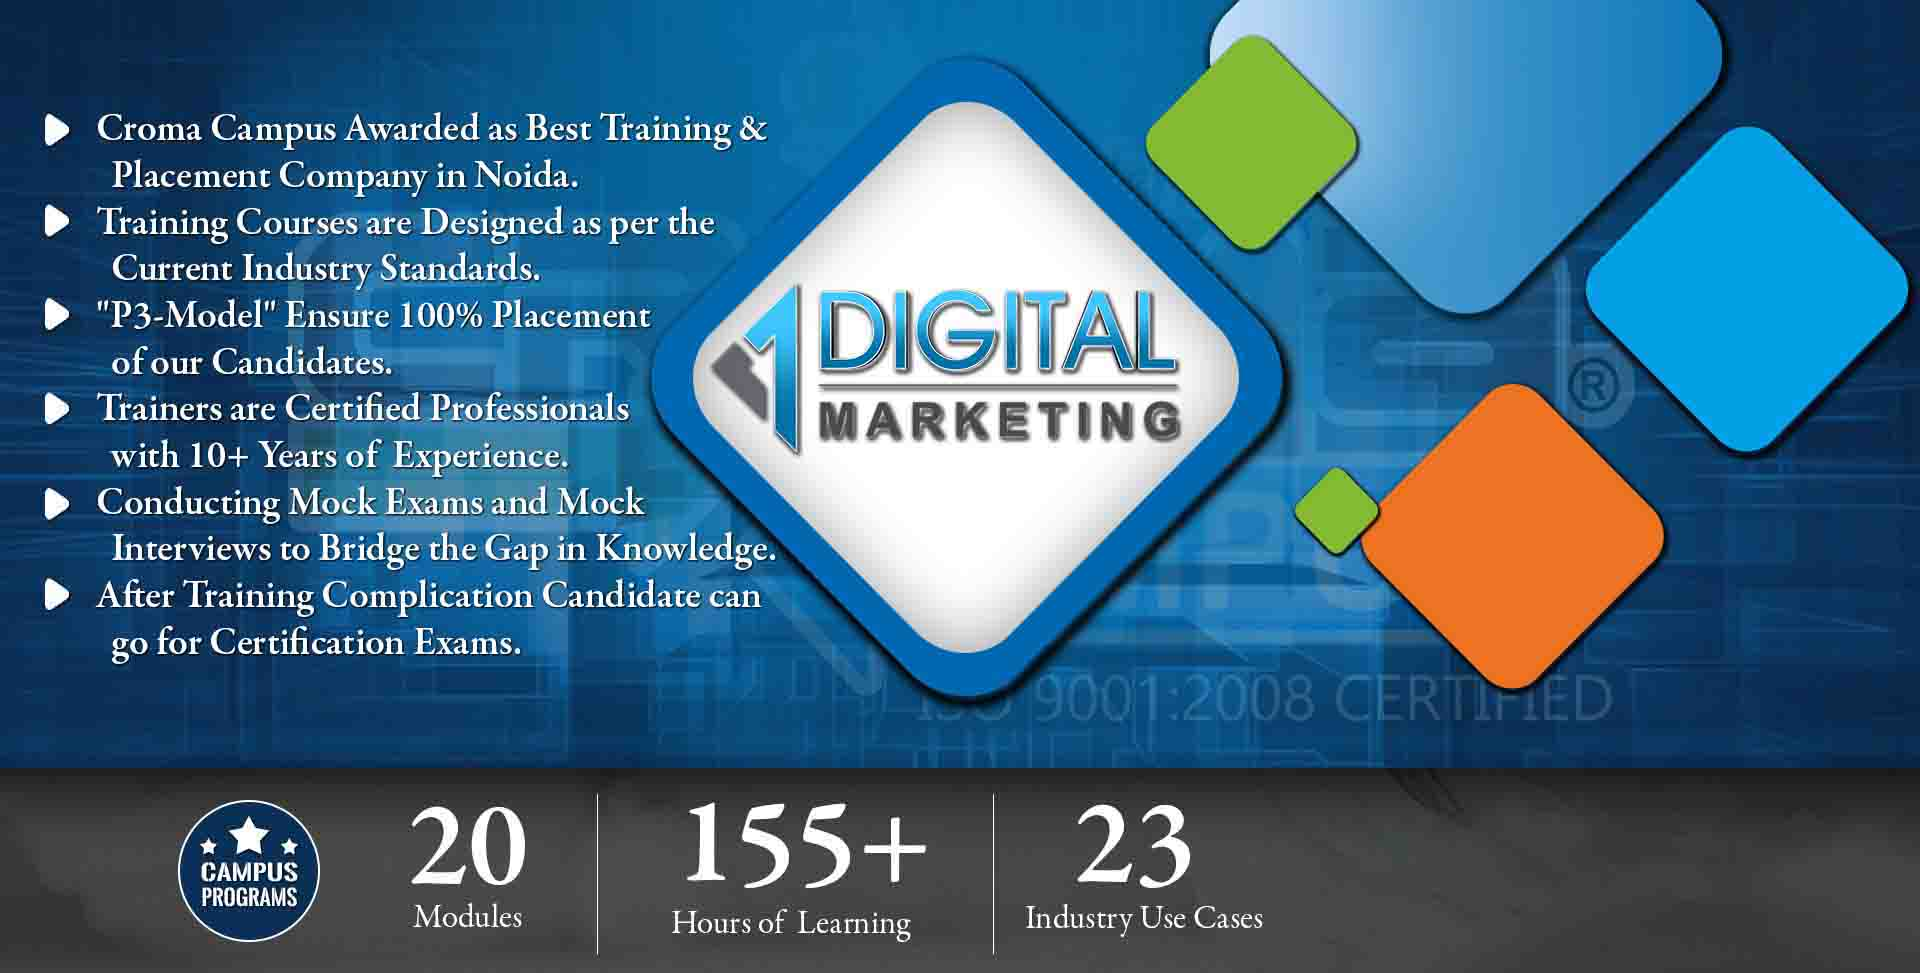 Digital Marketing Training in Noida- Croma Campus